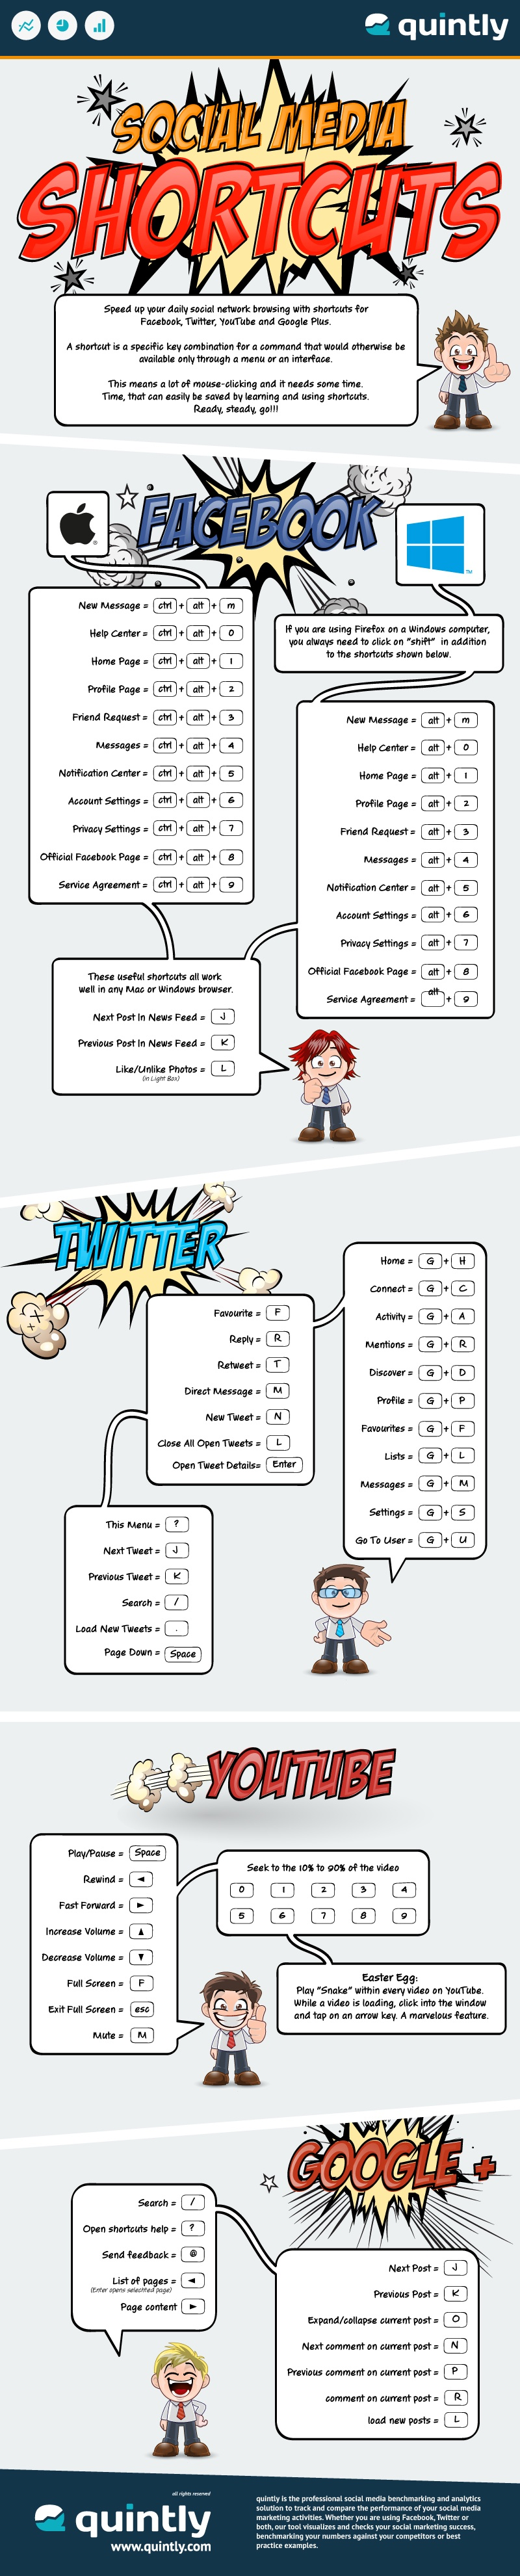 quintly Infographic: Social media shortcuts